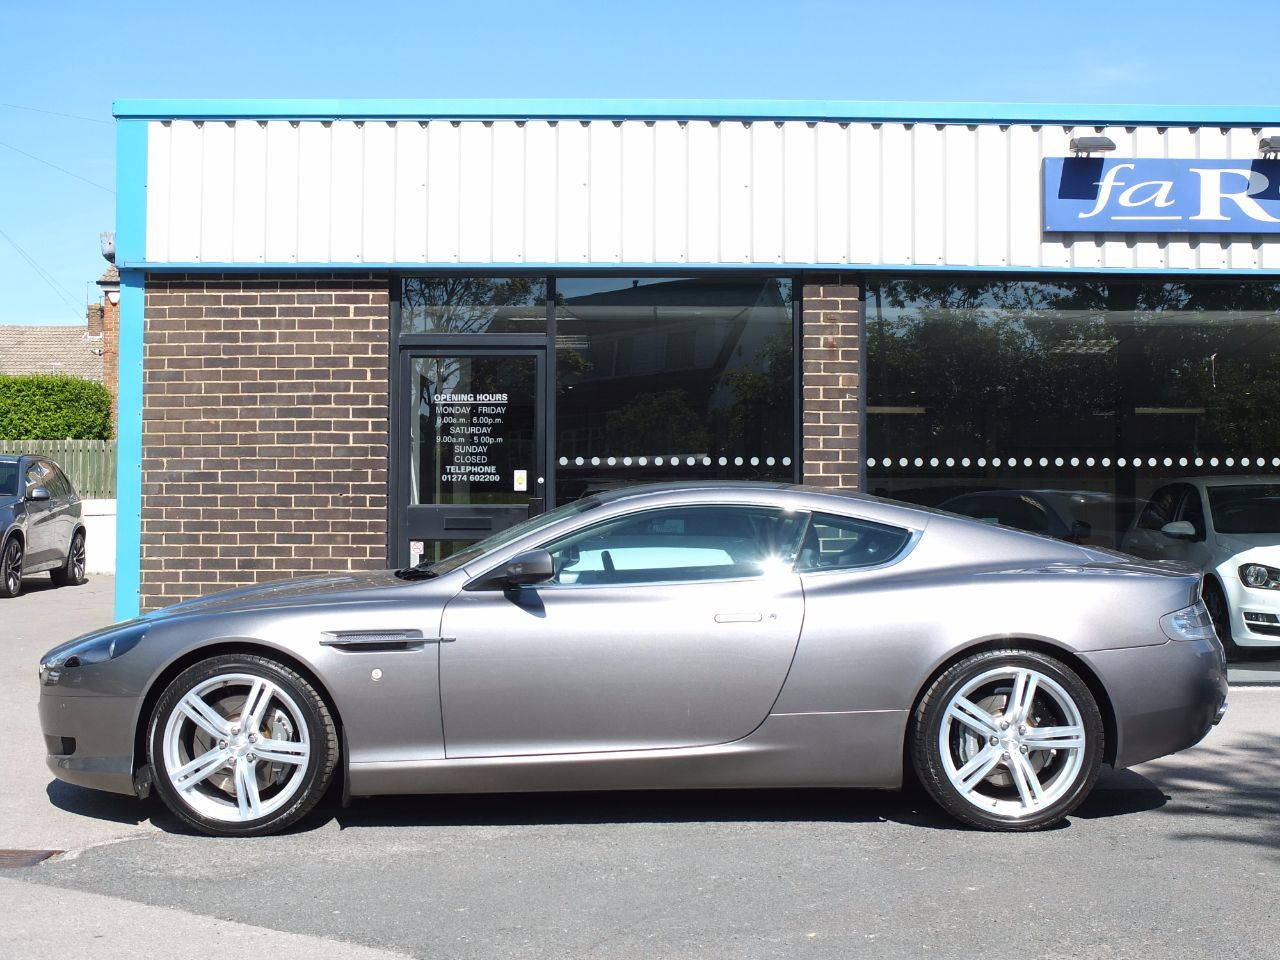 Aston Martin DB9 6.0 V12 Coupe 470 bhp Auto (Facelift) Sport Pack Coupe Petrol Silver